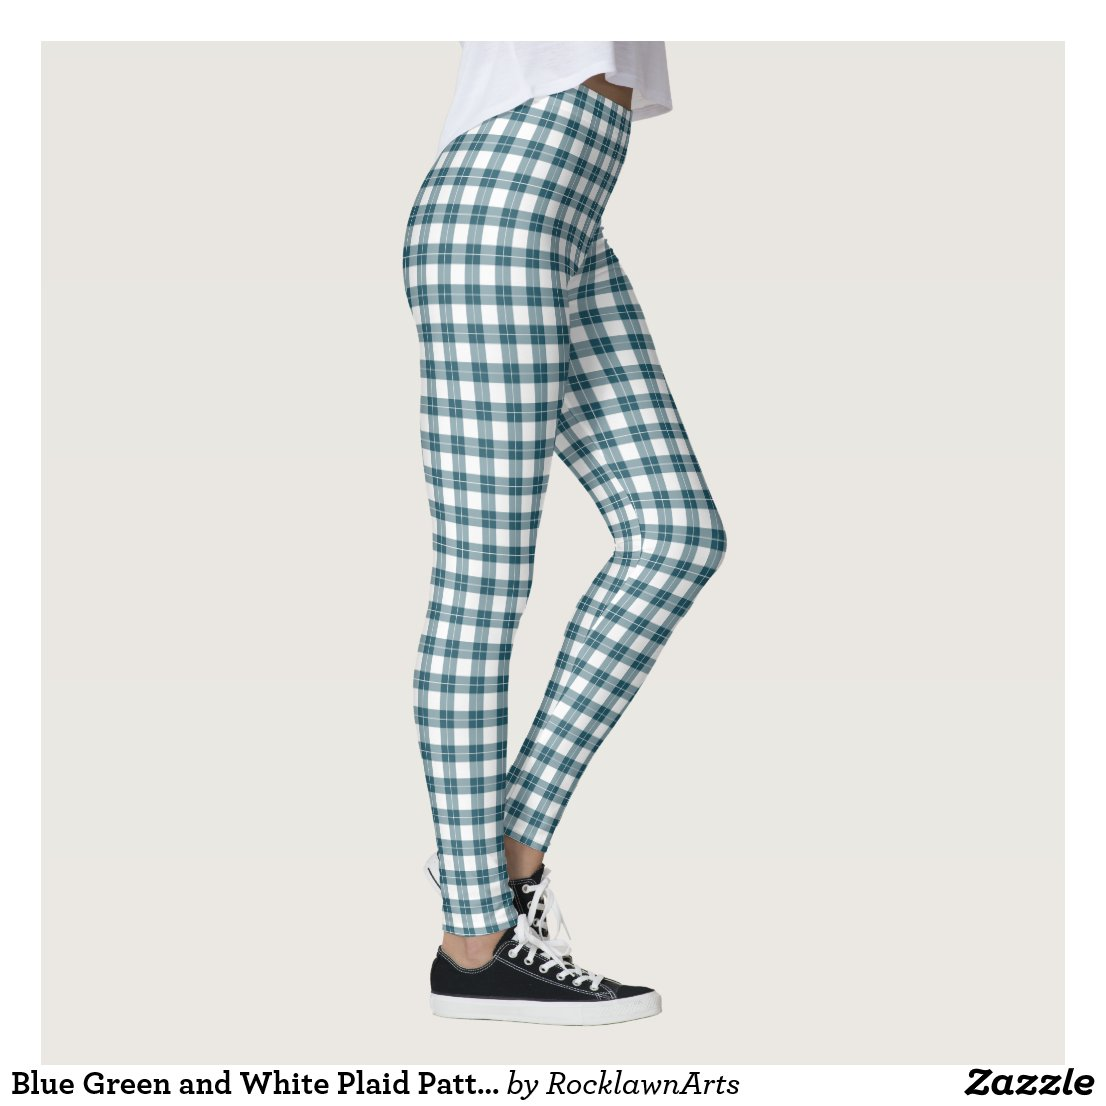 Blue Green and White Plaid Pattern Leggings